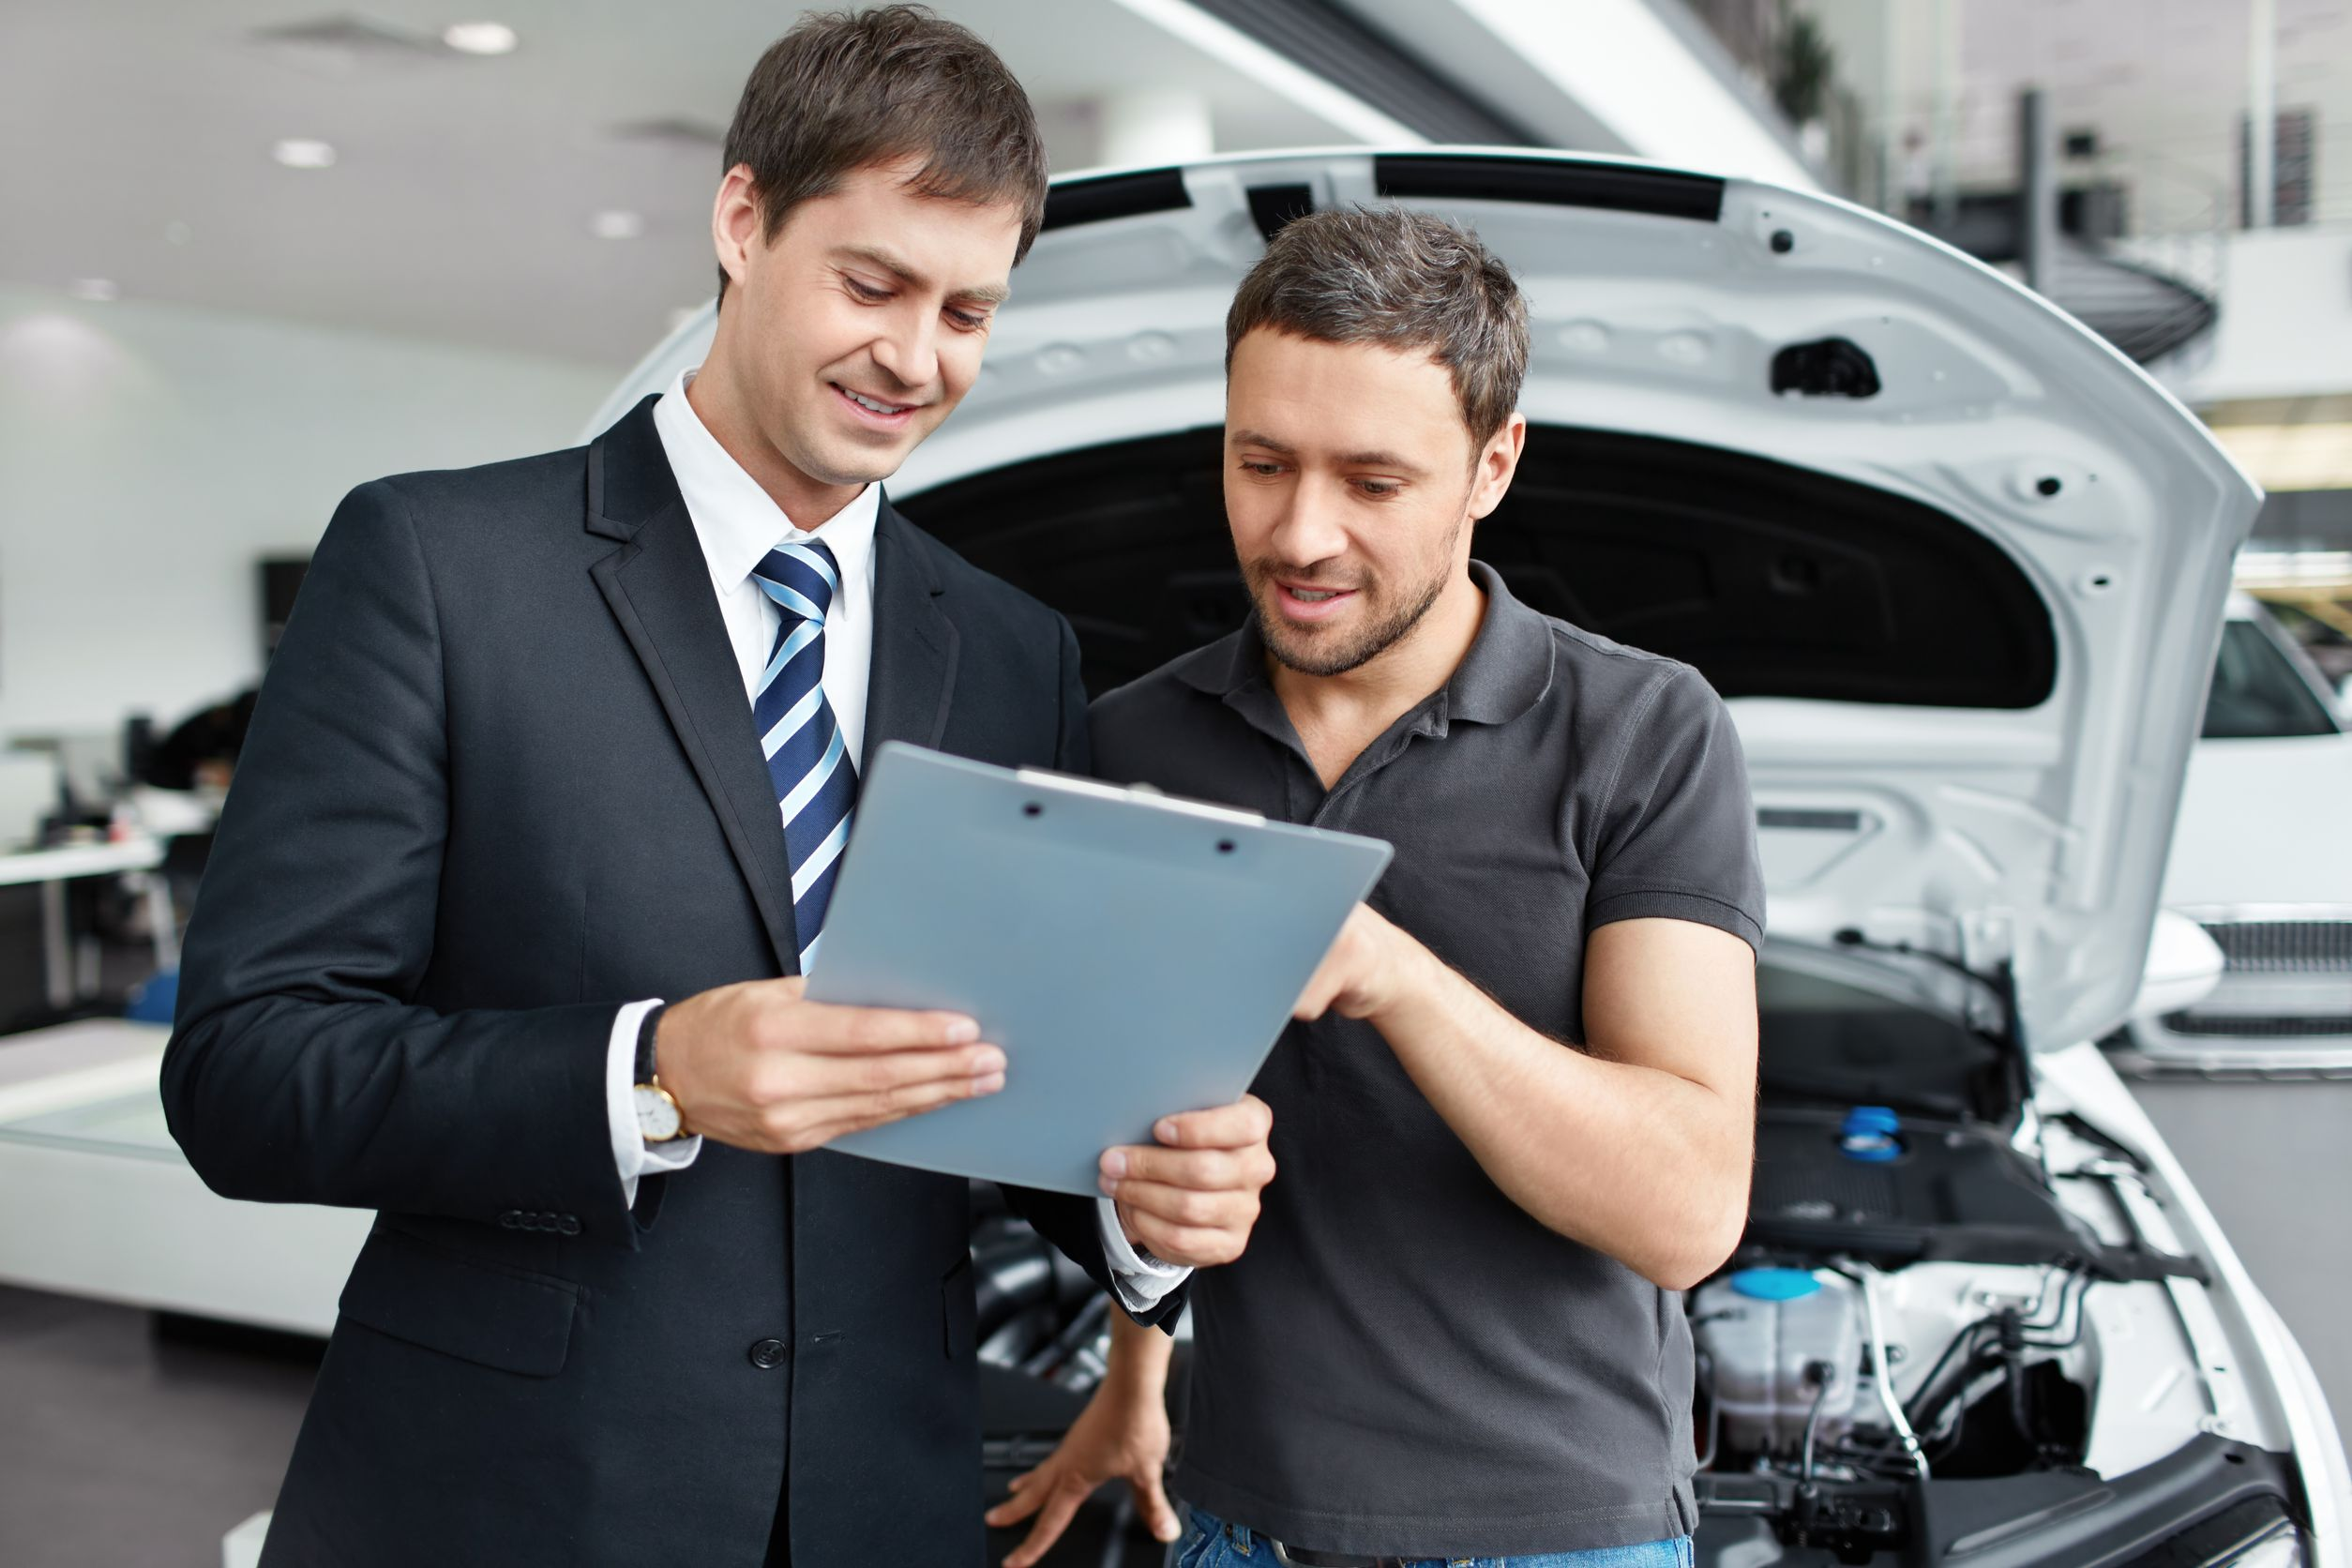 Why Should Dealers Care About Vehicle History Reporting?